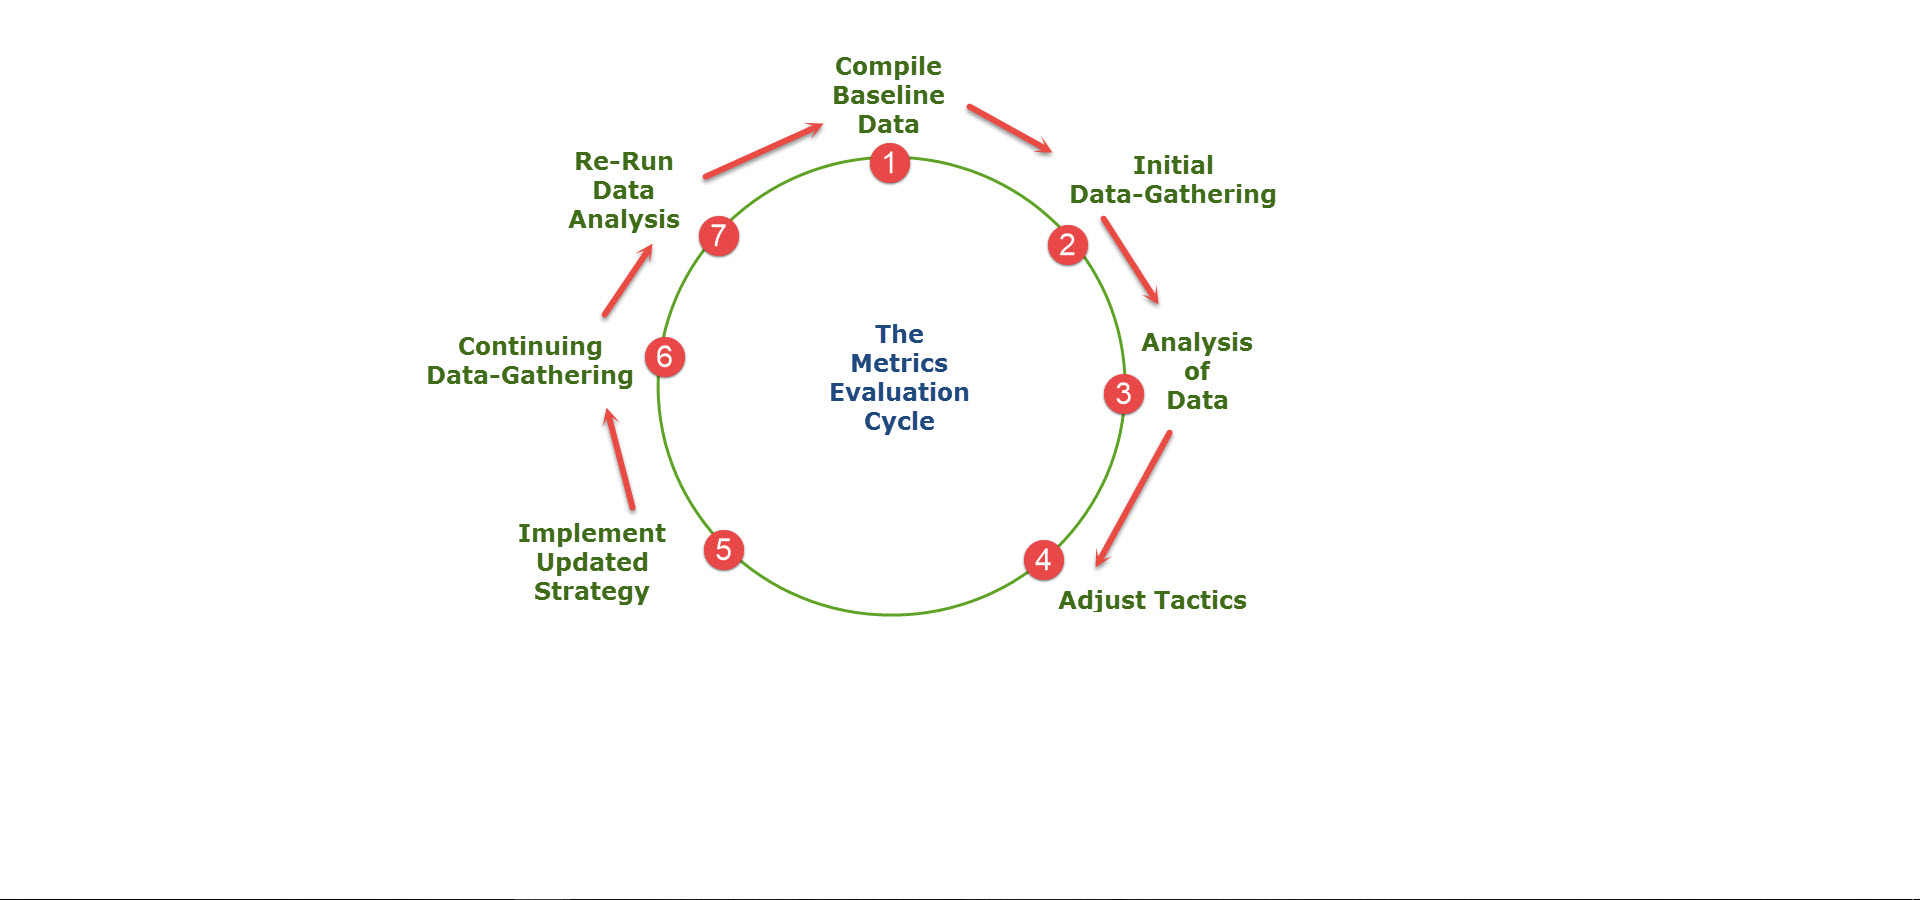 The Metrics Evaluation Cycle